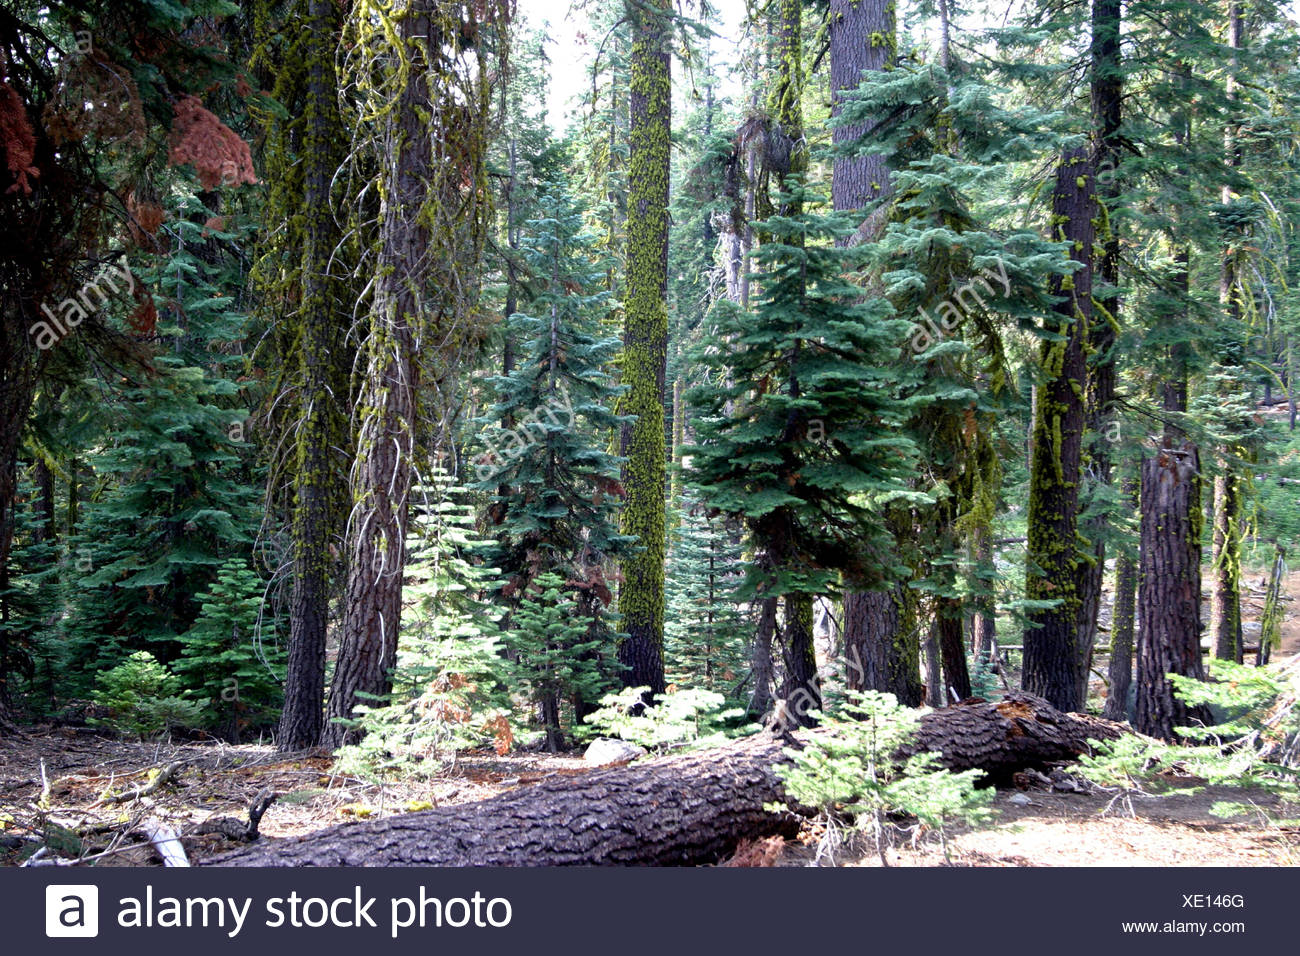 edge of the forest with Californian Red Fir, Jeffreys Pine and Silver Fir (Abies magnifica, Pinus jeffreyi, Abies alba), USA, C - Stock Image